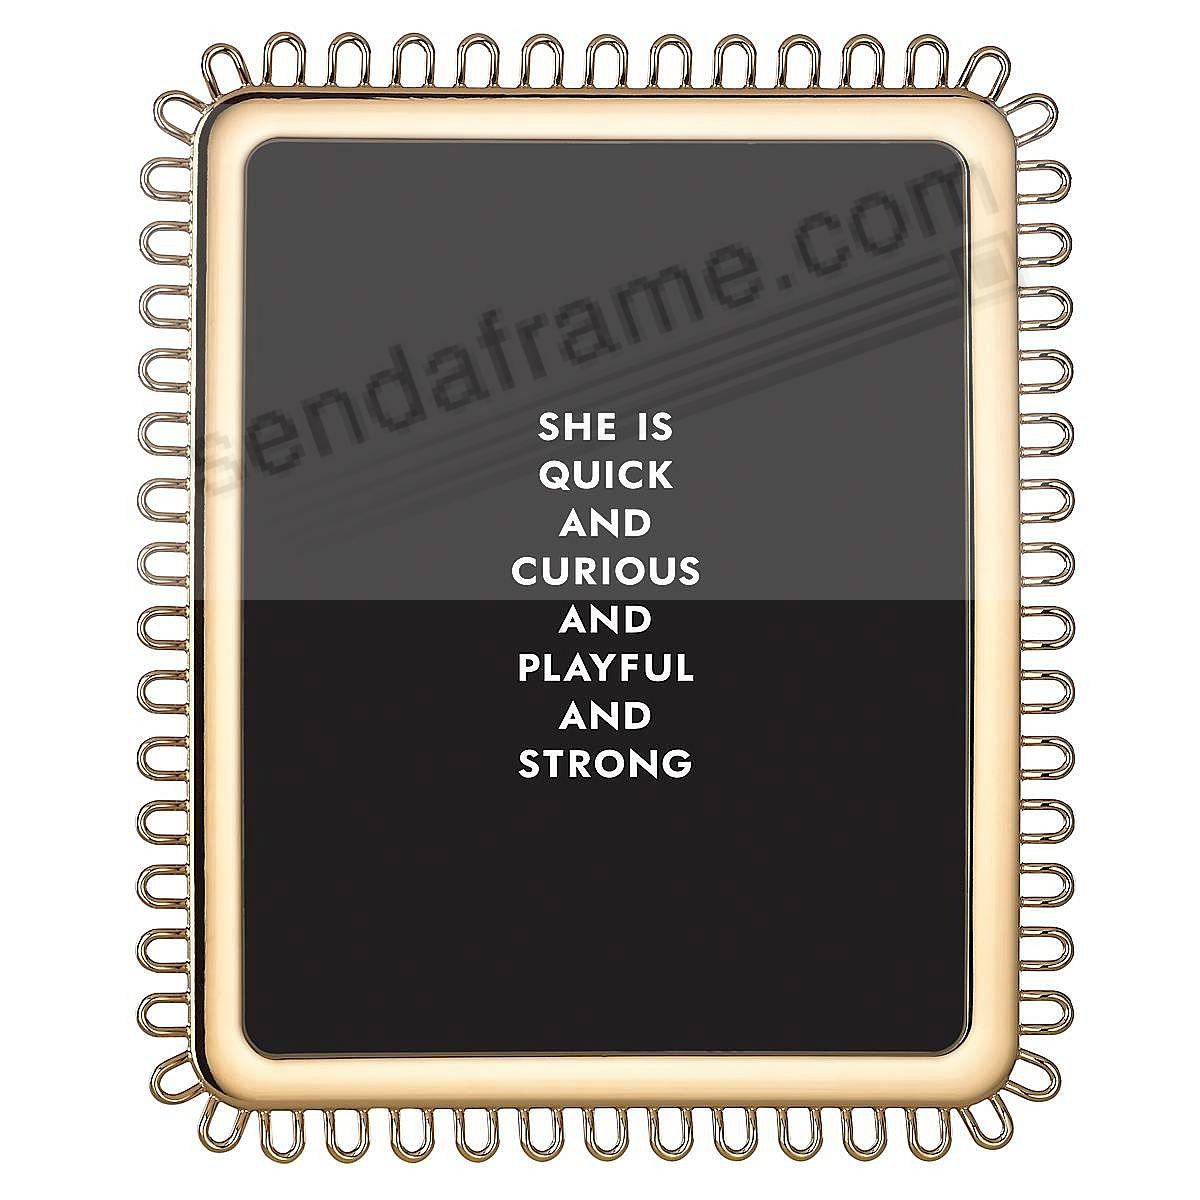 KEATON STREET GOLD frame for 8x10 prints by kate spade new york®